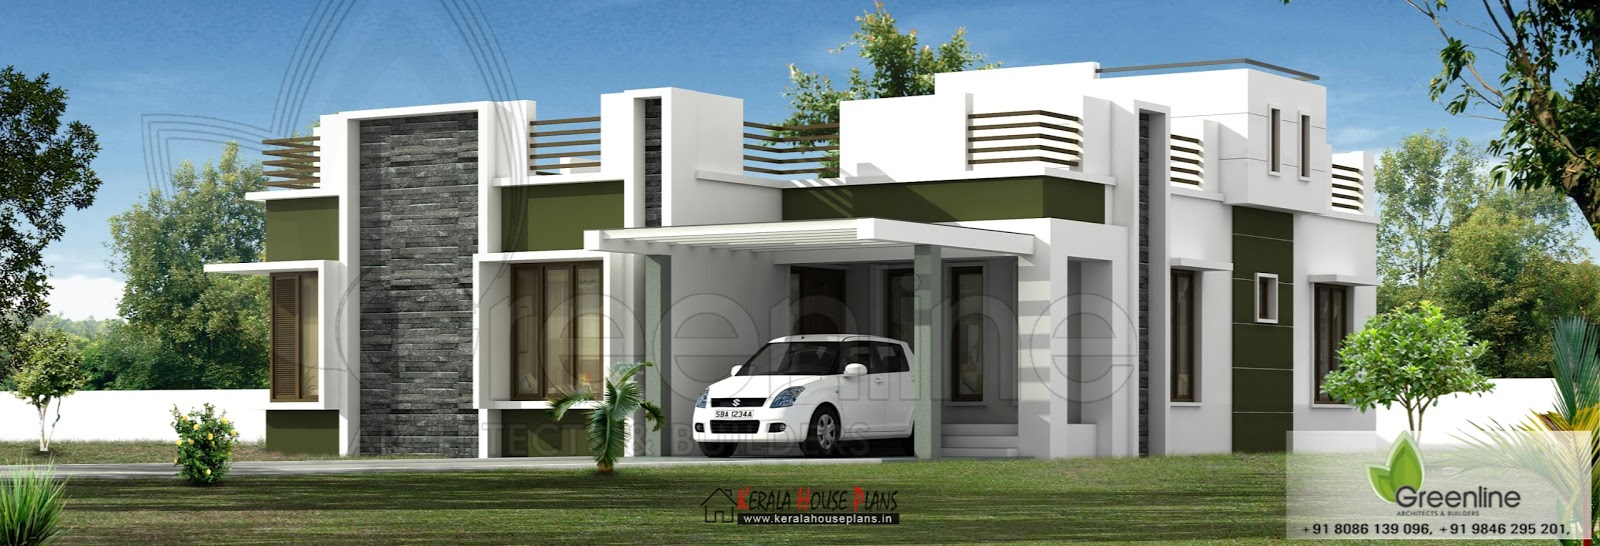 Low budget single floor house elevation